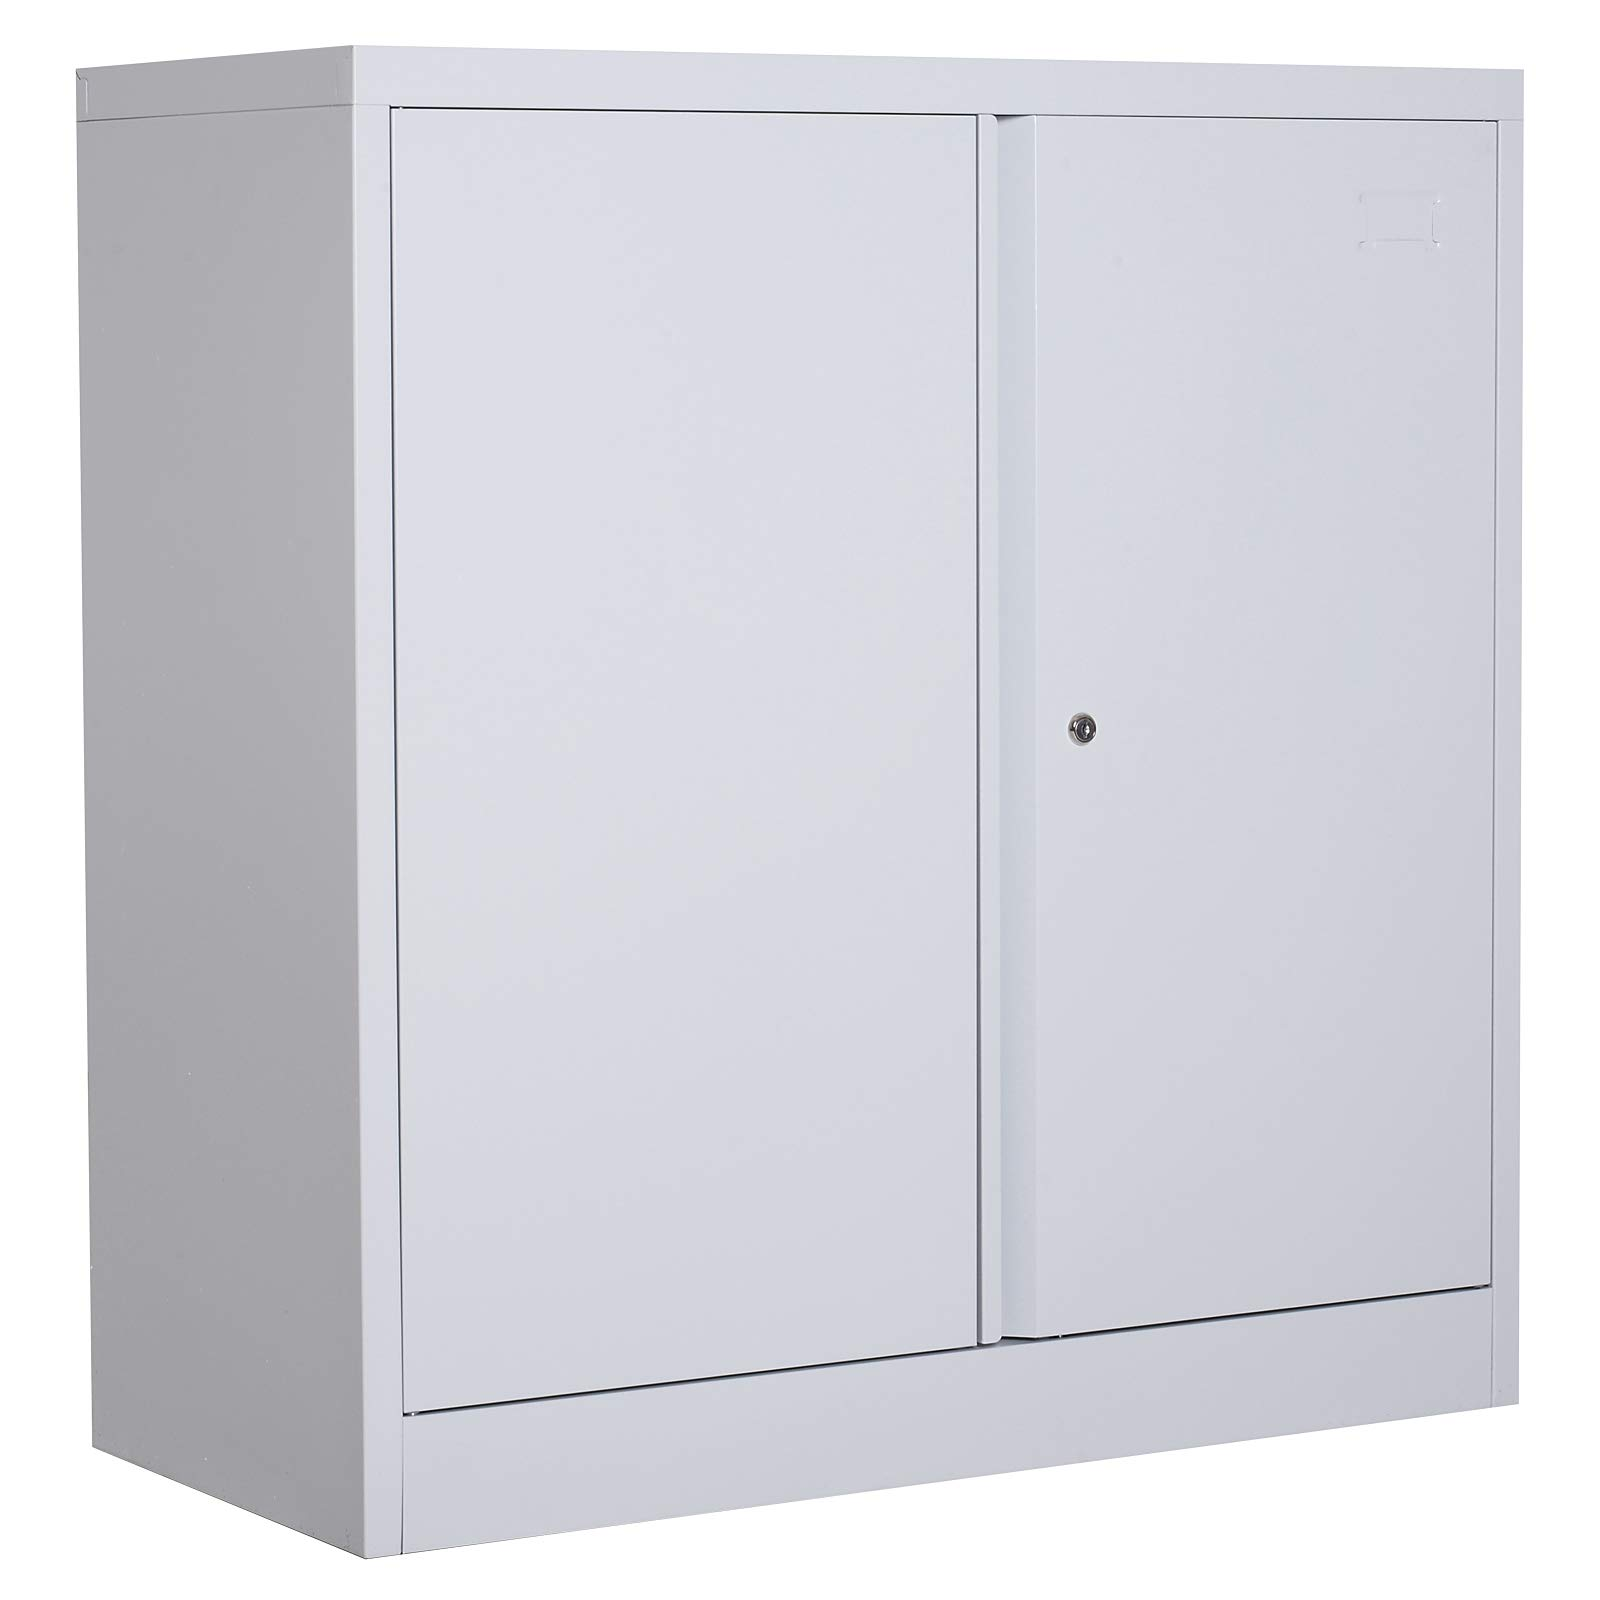 HOMCOM 36'' Counter Height Metal Locking Storage Cabinet with 2 Adjustable Shelves - White by HOMCOM